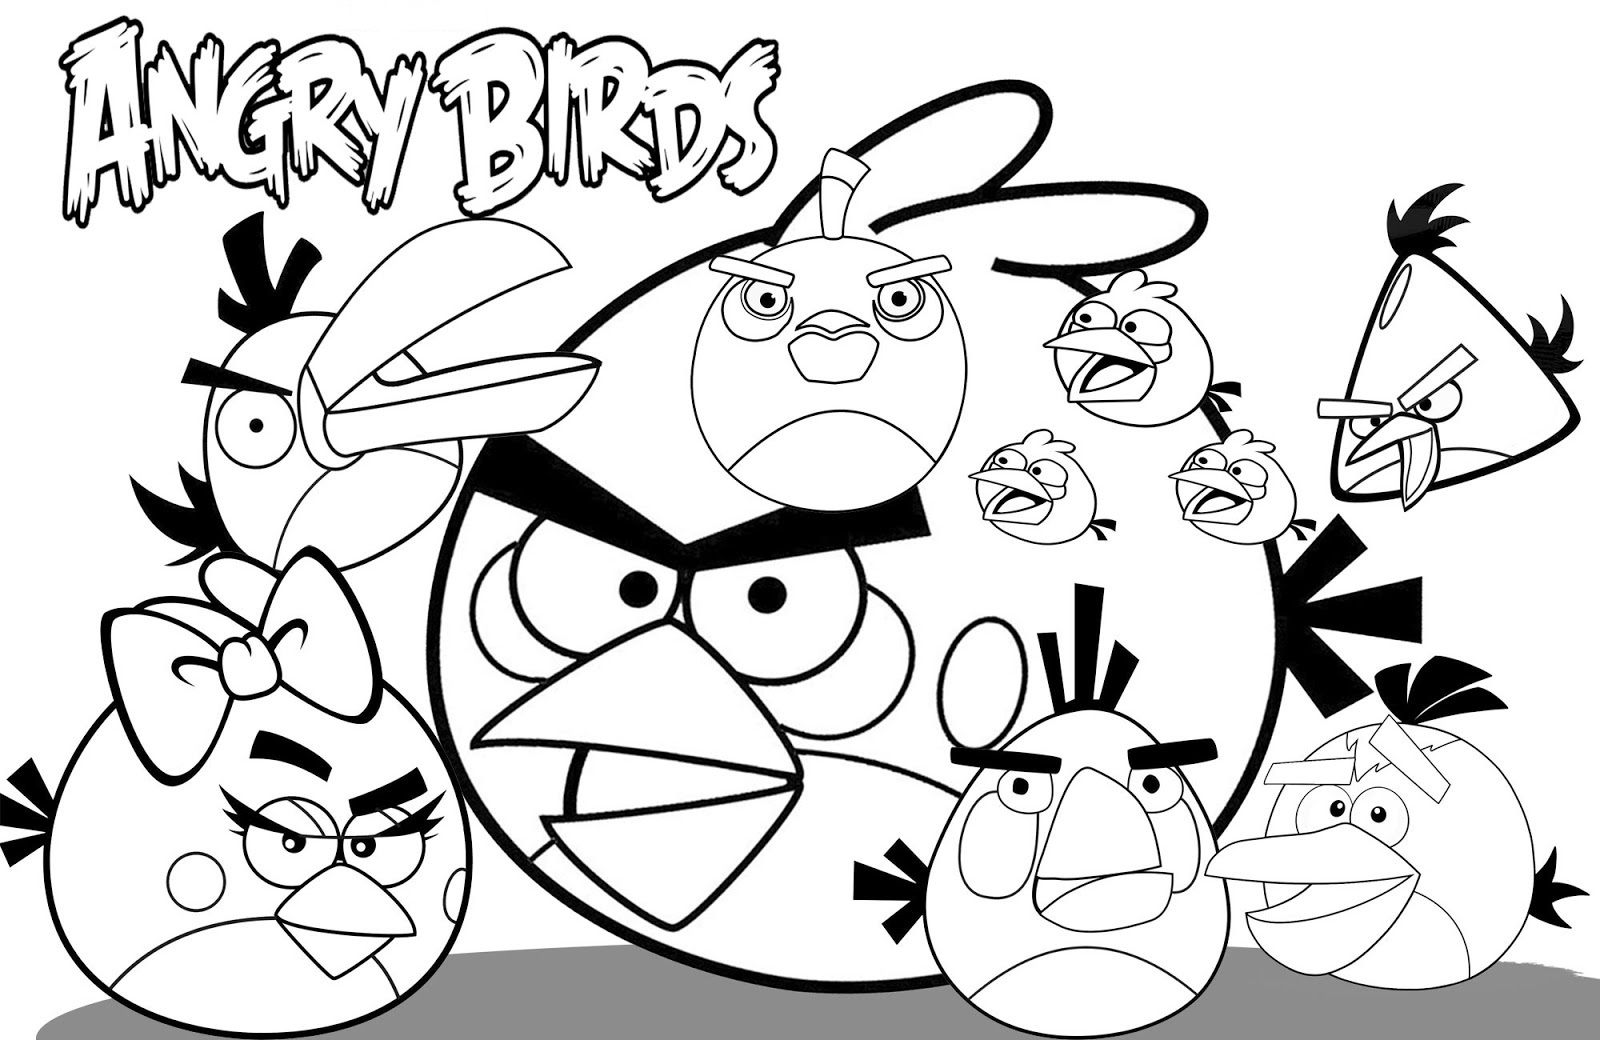 Adult Cute Free Angry Bird Coloring Pages Images top free printable angry bird coloring pages for kids to print gallery images